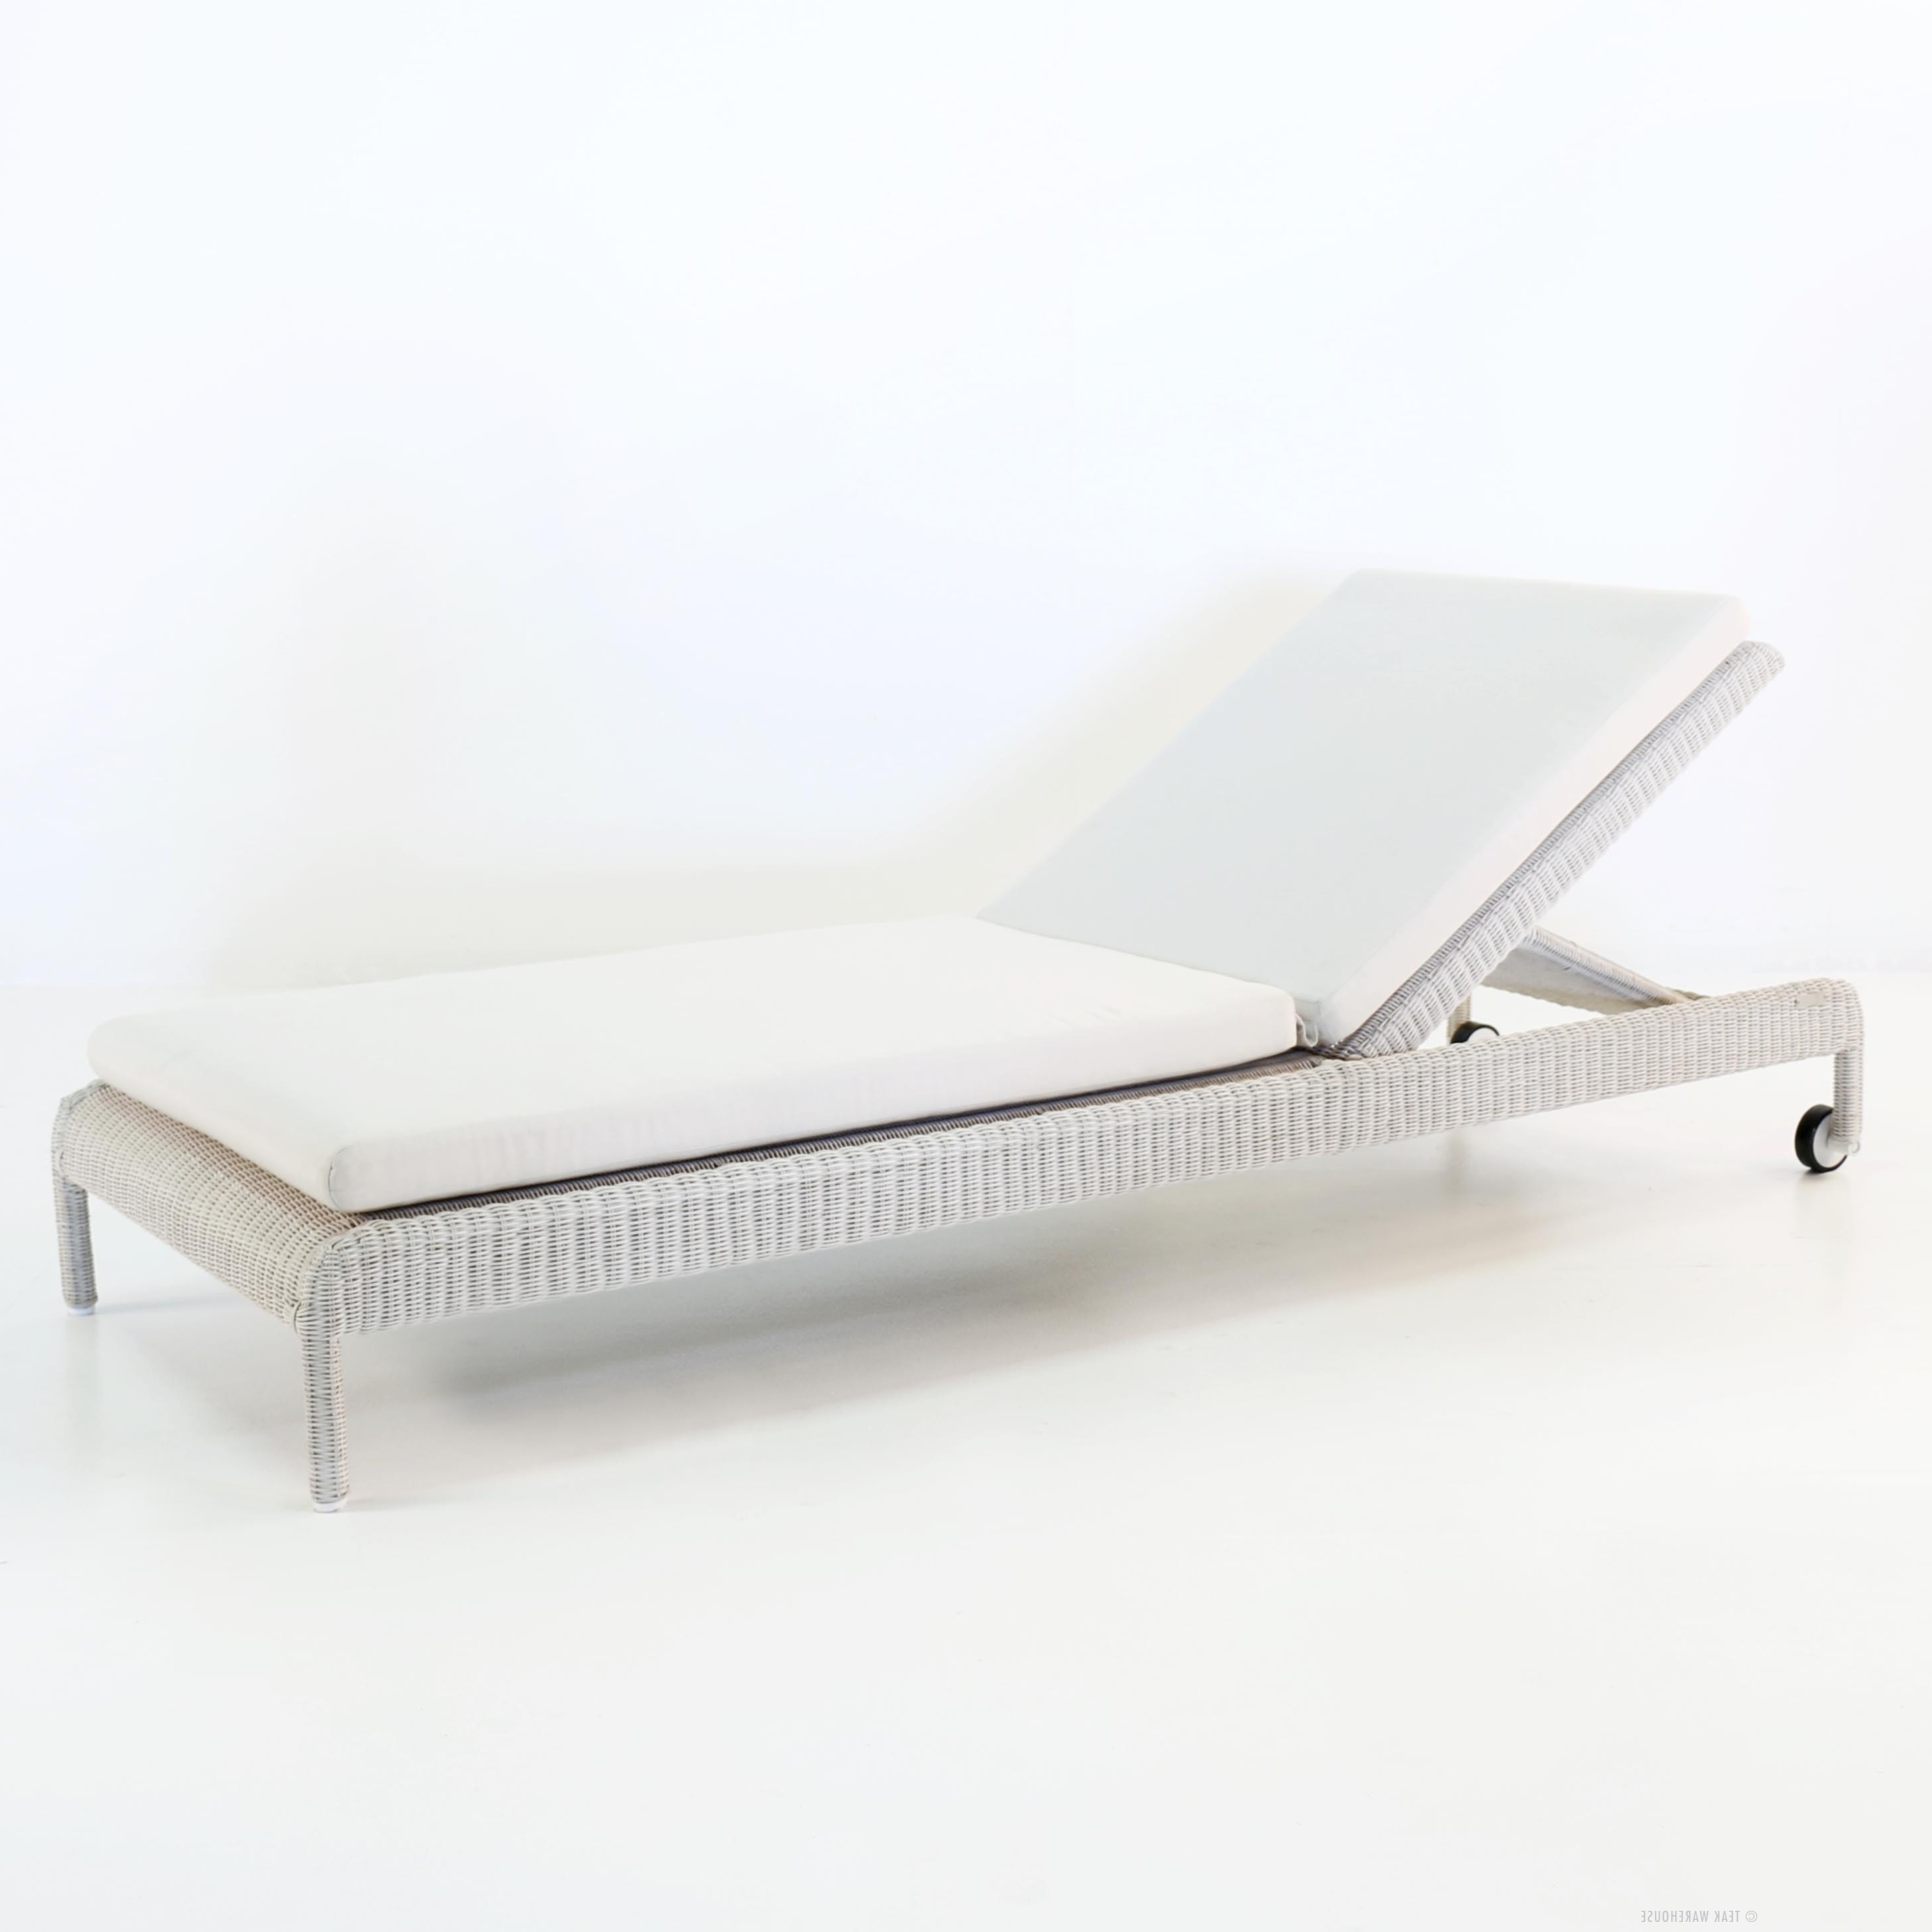 Most Popular Adams Chaise Lounges With Outdoor : Adams Chaise Lounge White Chaise Lounge Lowes Chaise (View 10 of 15)